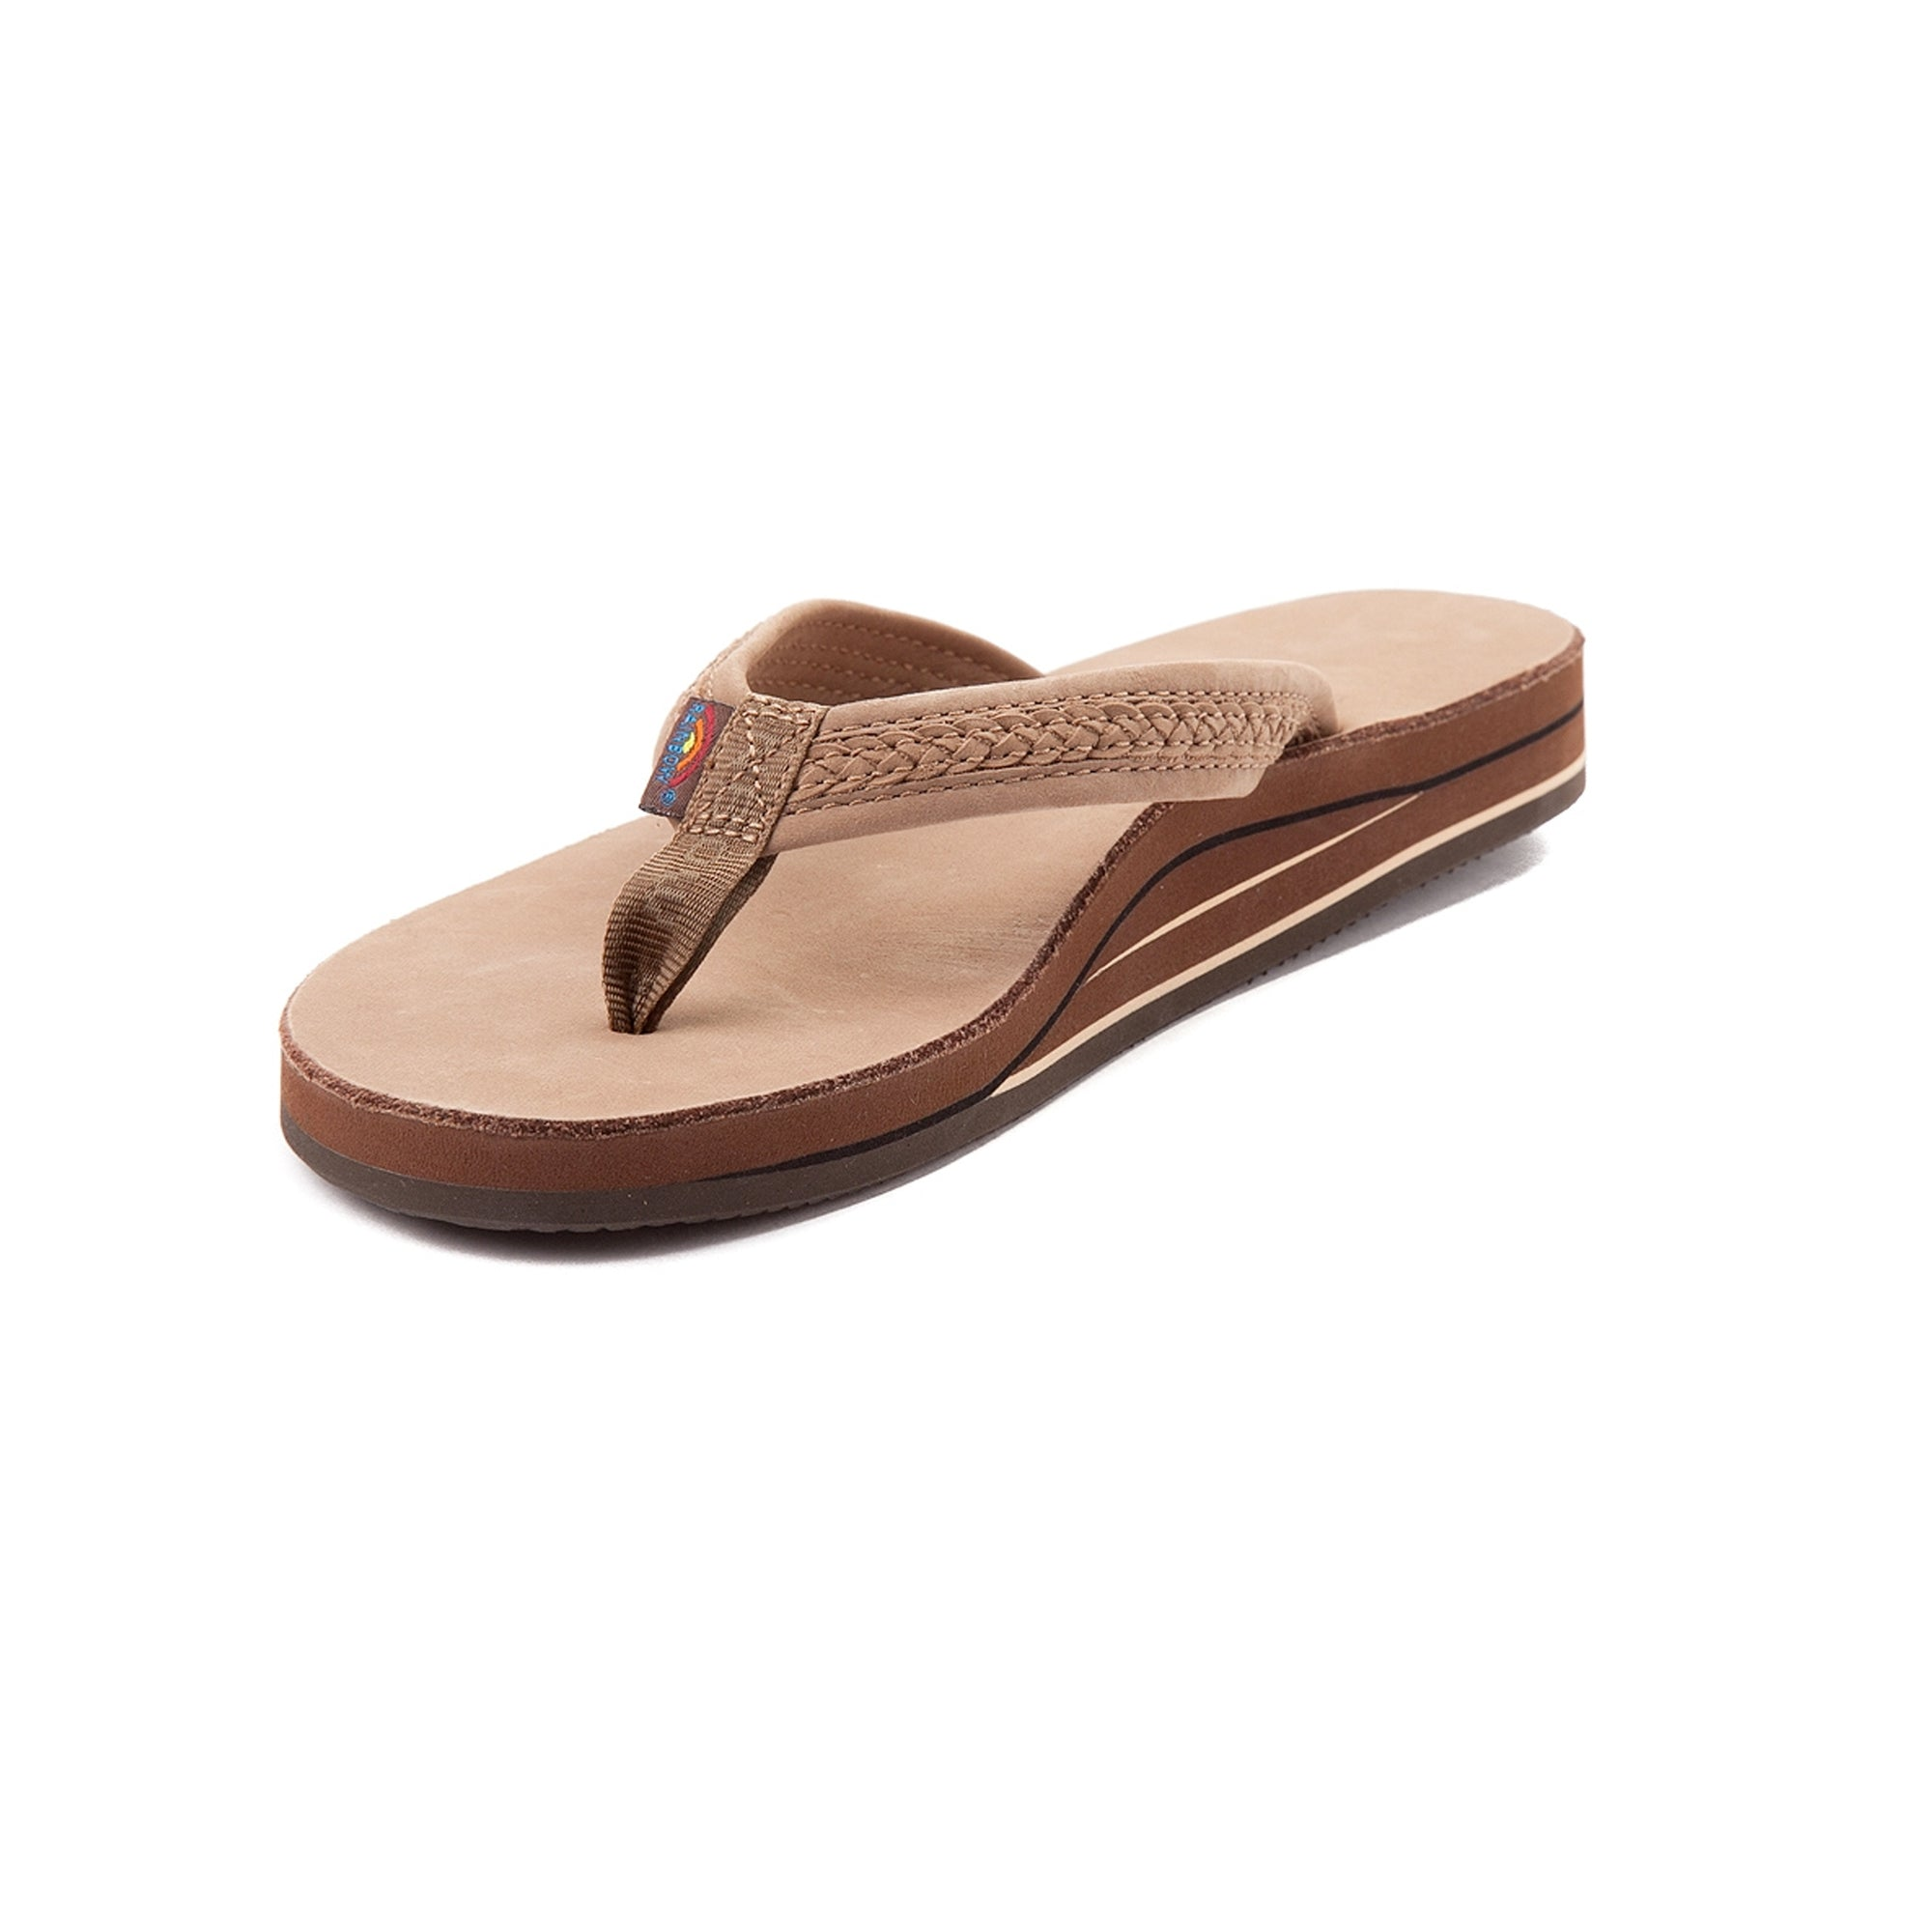 Rainbow Willow Double Layer Arch Women's Sandals - Dark Brown